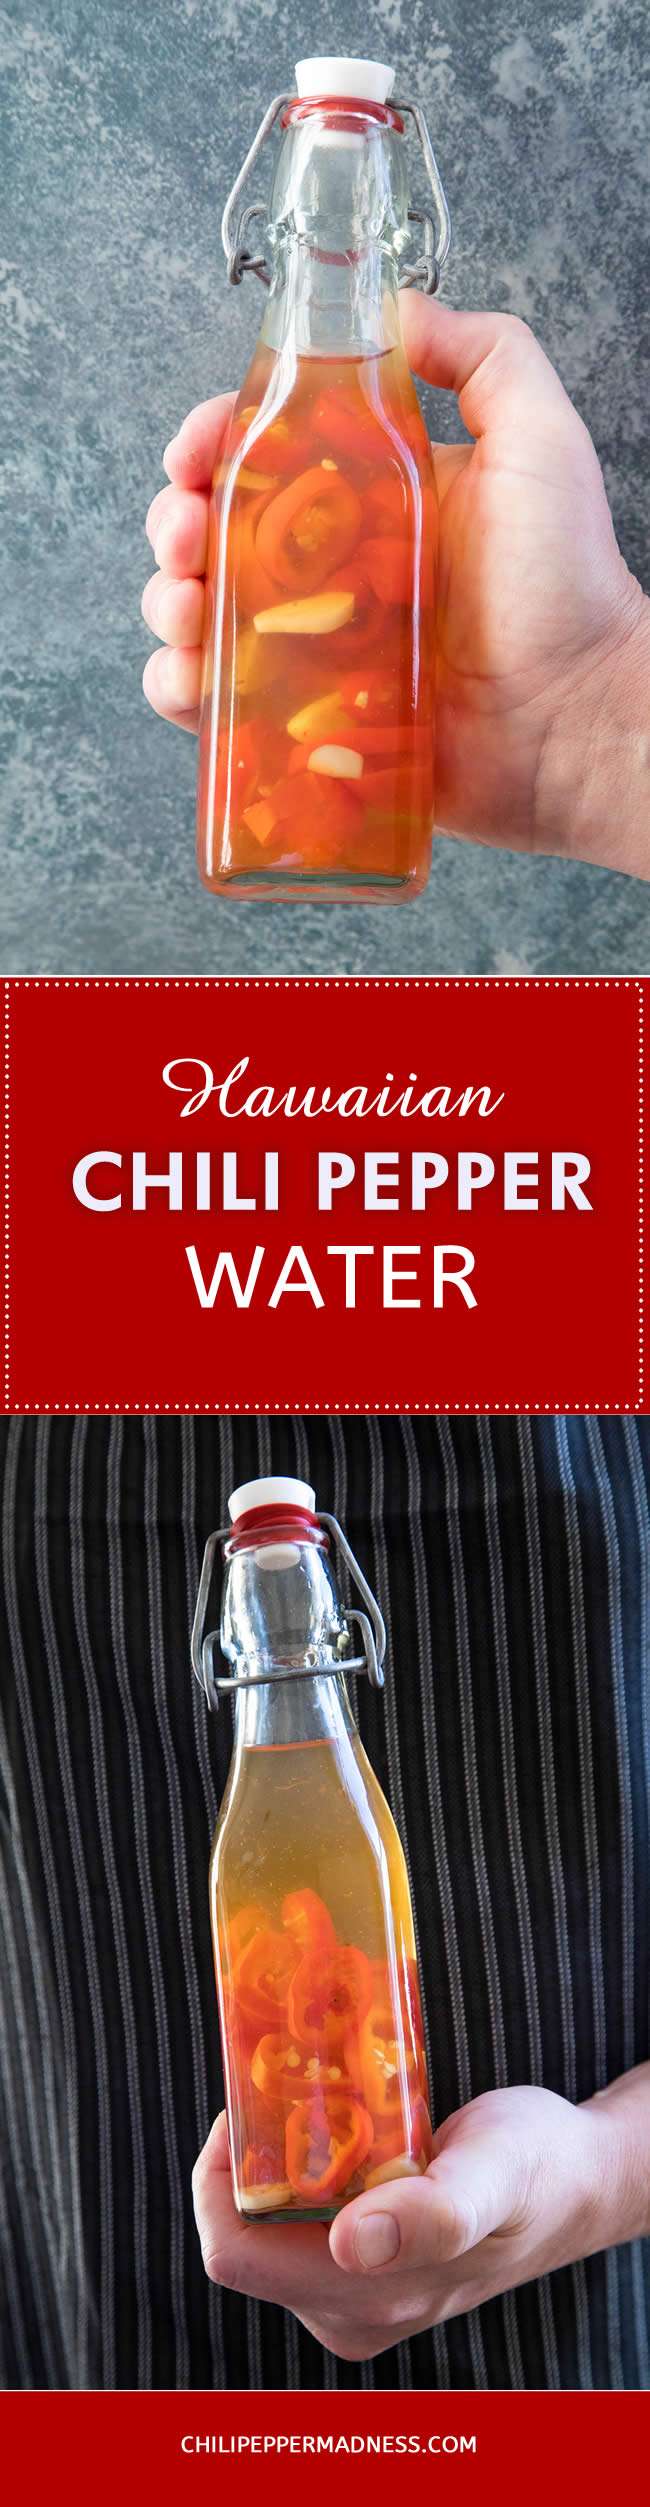 Hawaiian Chili Pepper Water - Recipe